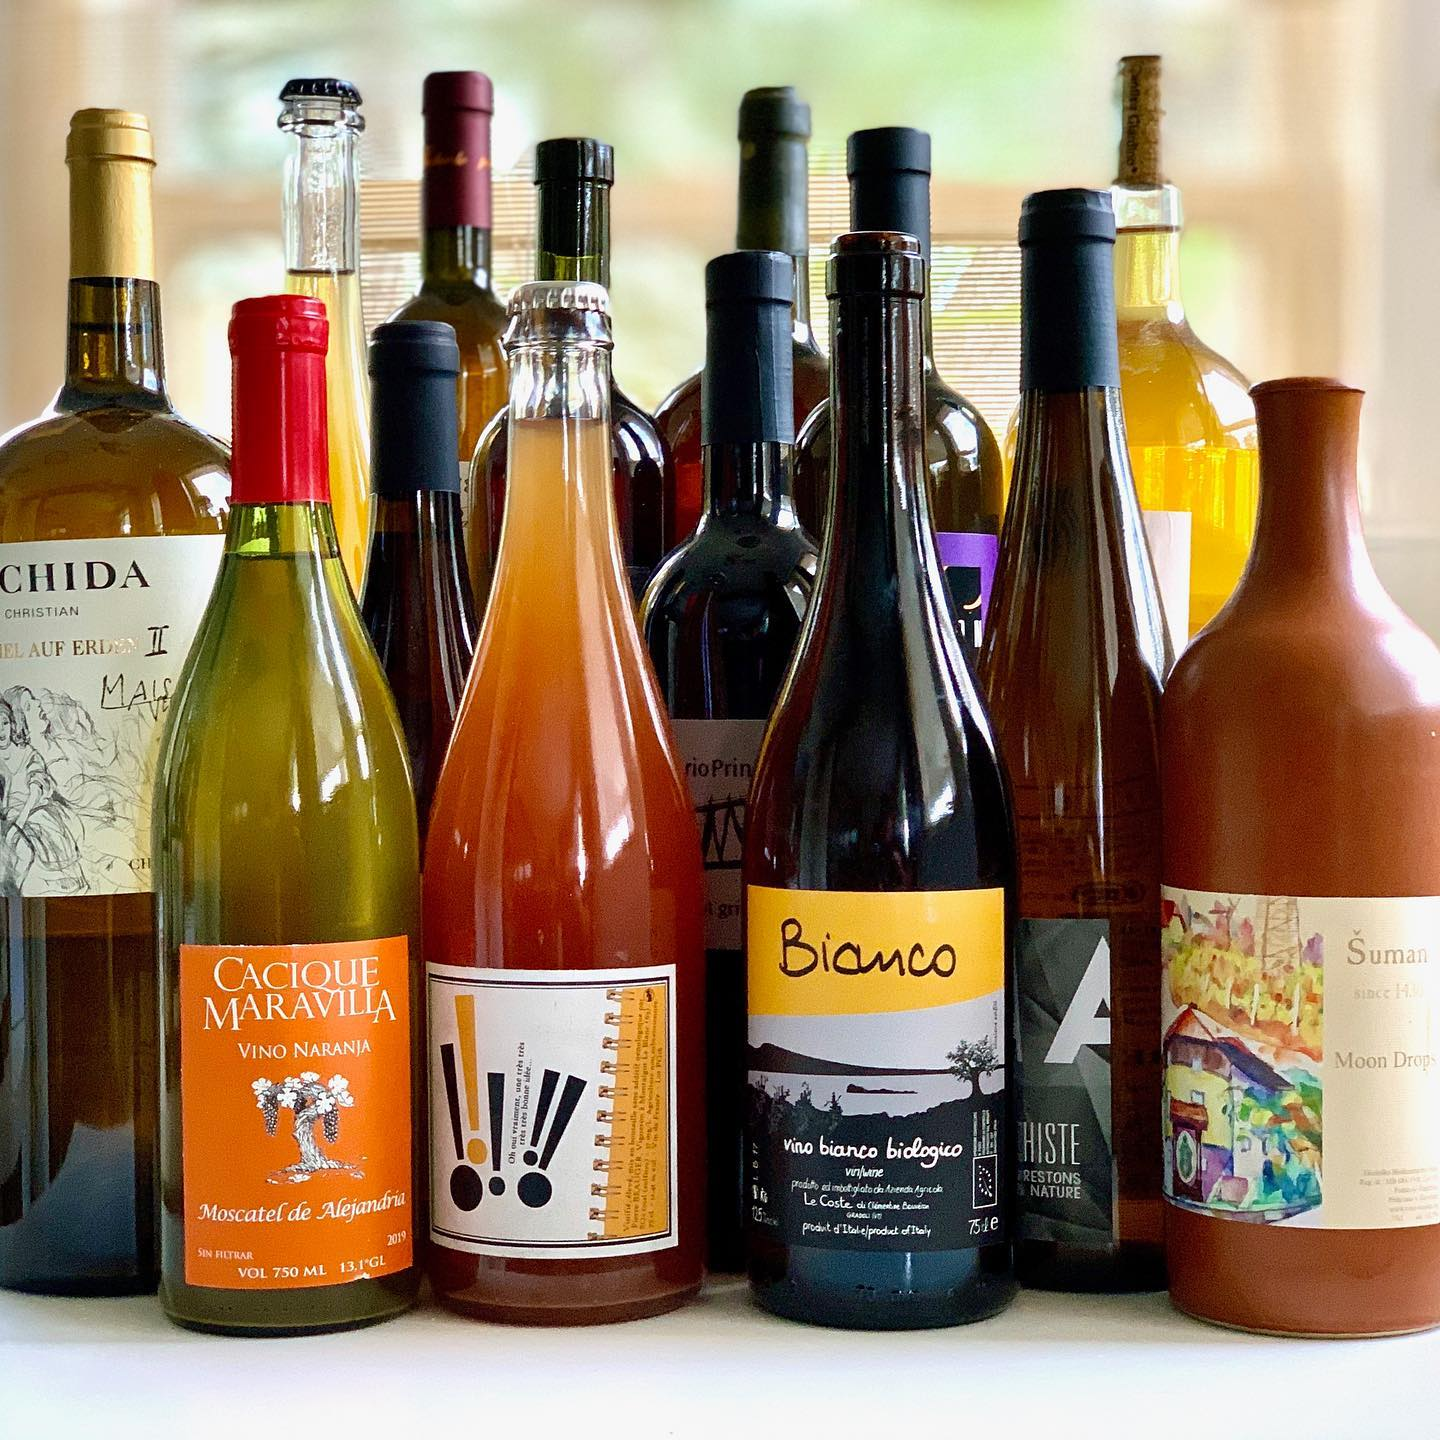 A collection of bottles of wine with colorful labels